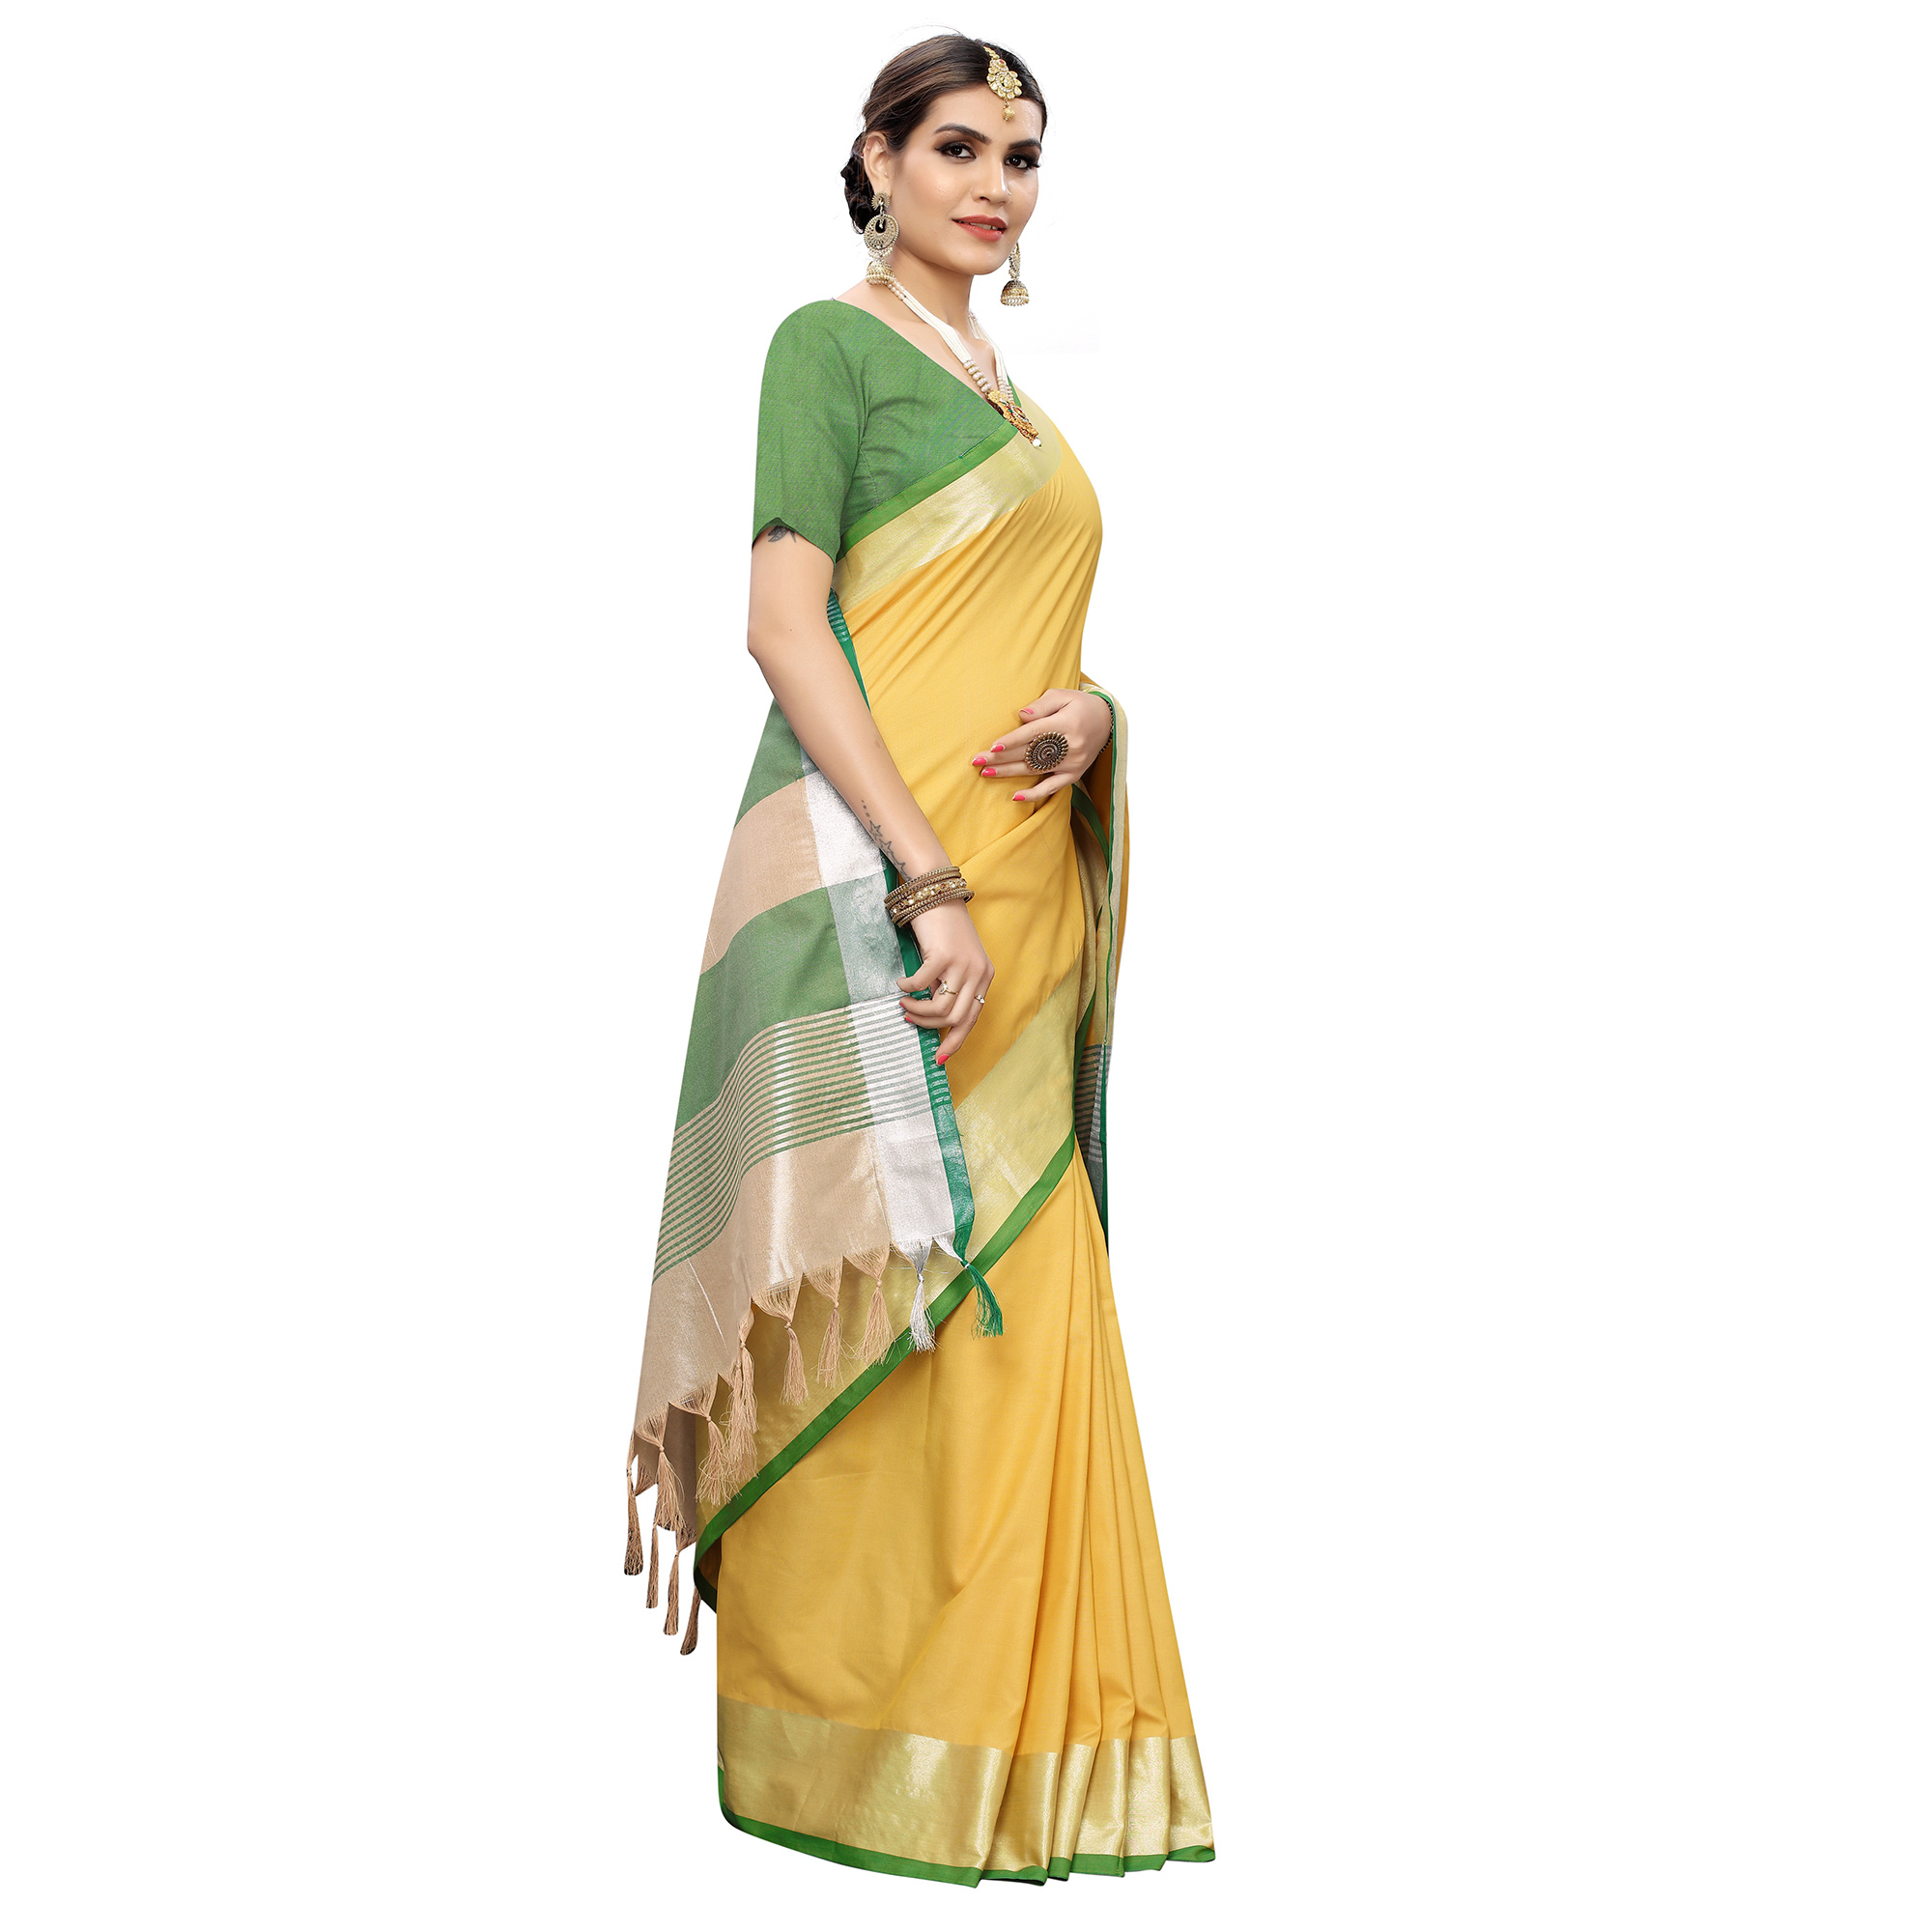 Glorious Yelllow-Green Colored Festive Wear Woven Linen Saree With Tassles